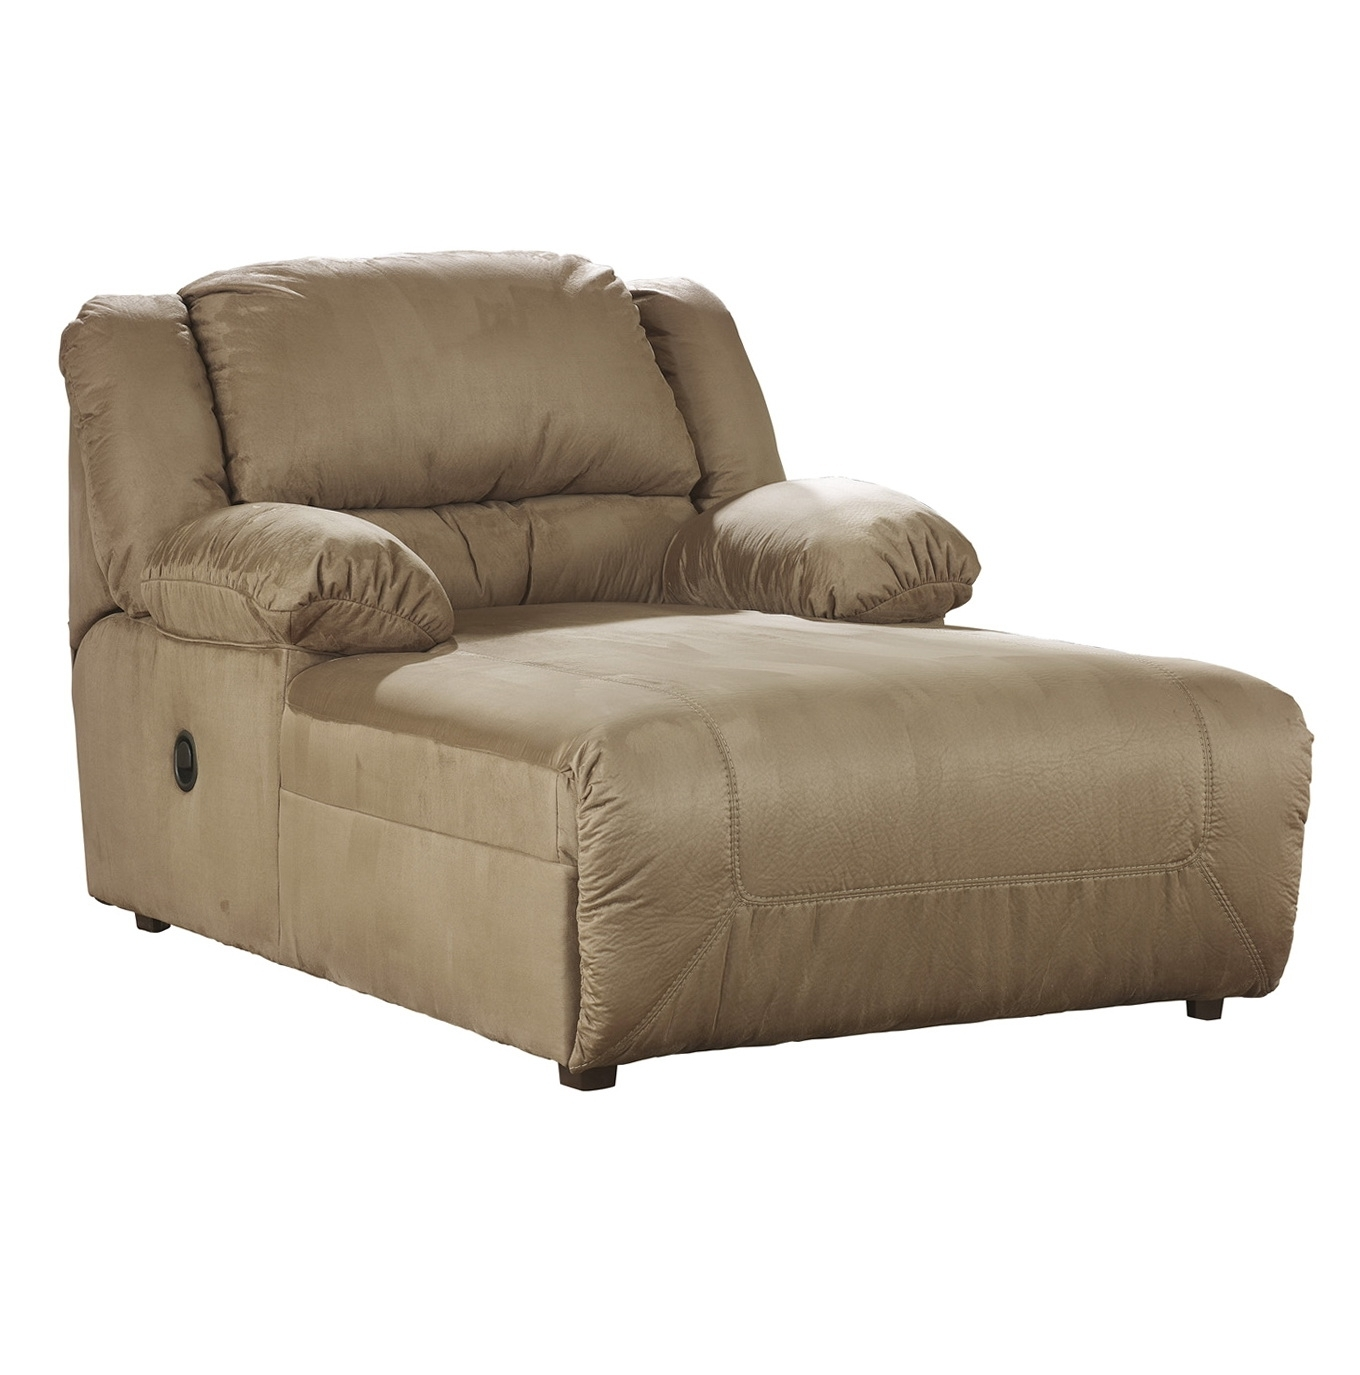 Ashley Furniture Chaise Lounge Couch (View 7 of 15)